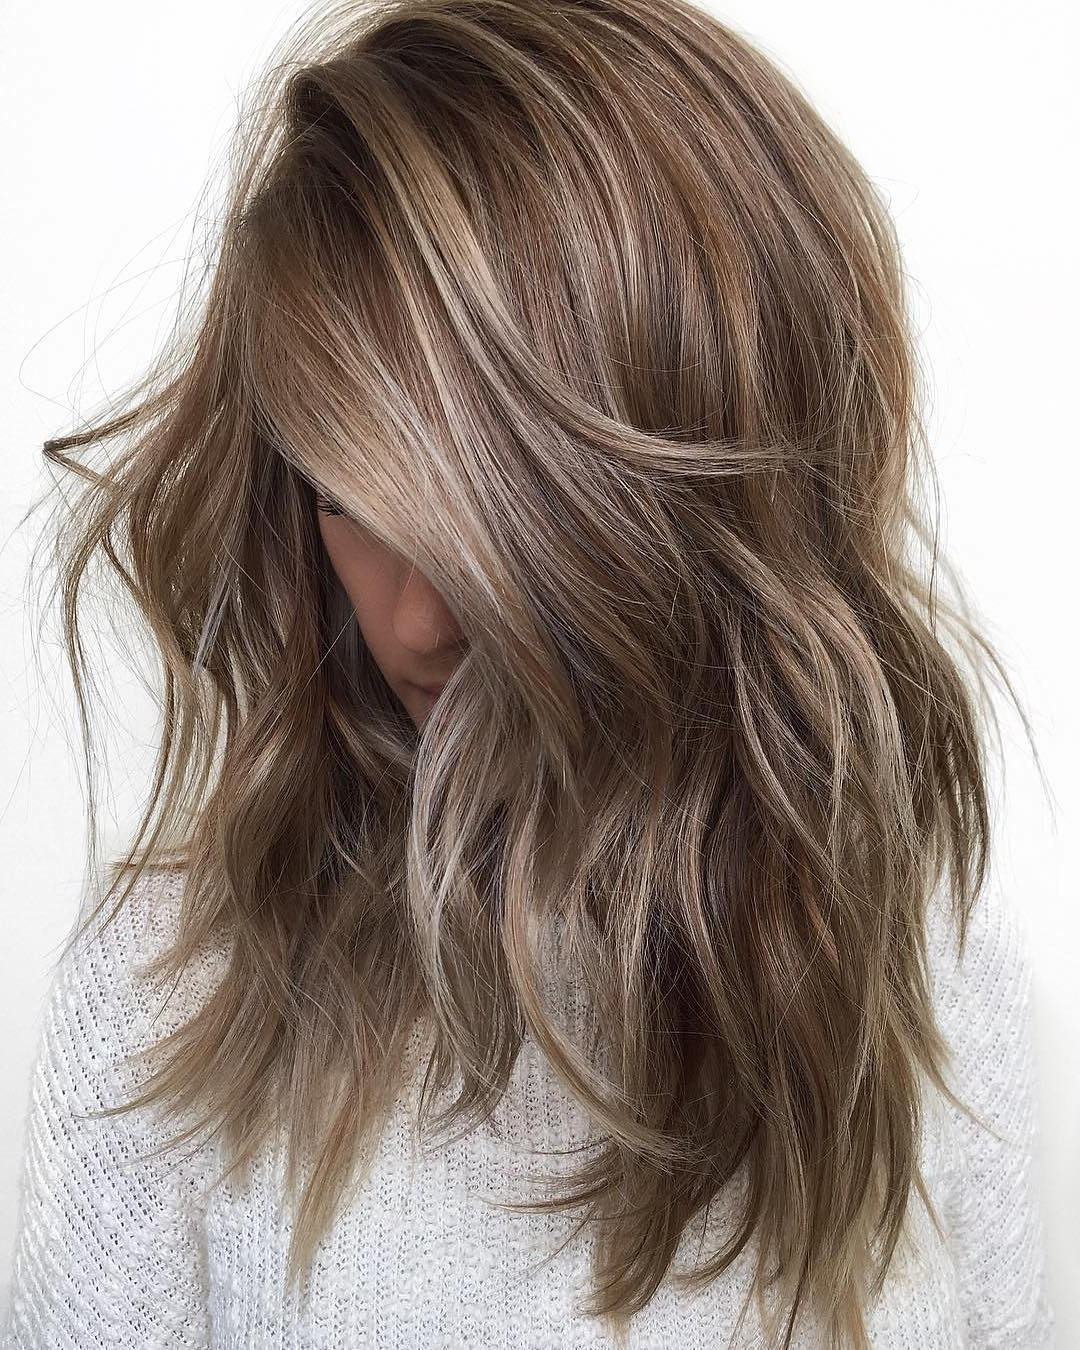 10 Balayage Ombre Hair Styles For Shoulder Length Hair Inside Most Recently Released Black To Light Brown Ombre Waves Hairstyles (Gallery 18 of 20)